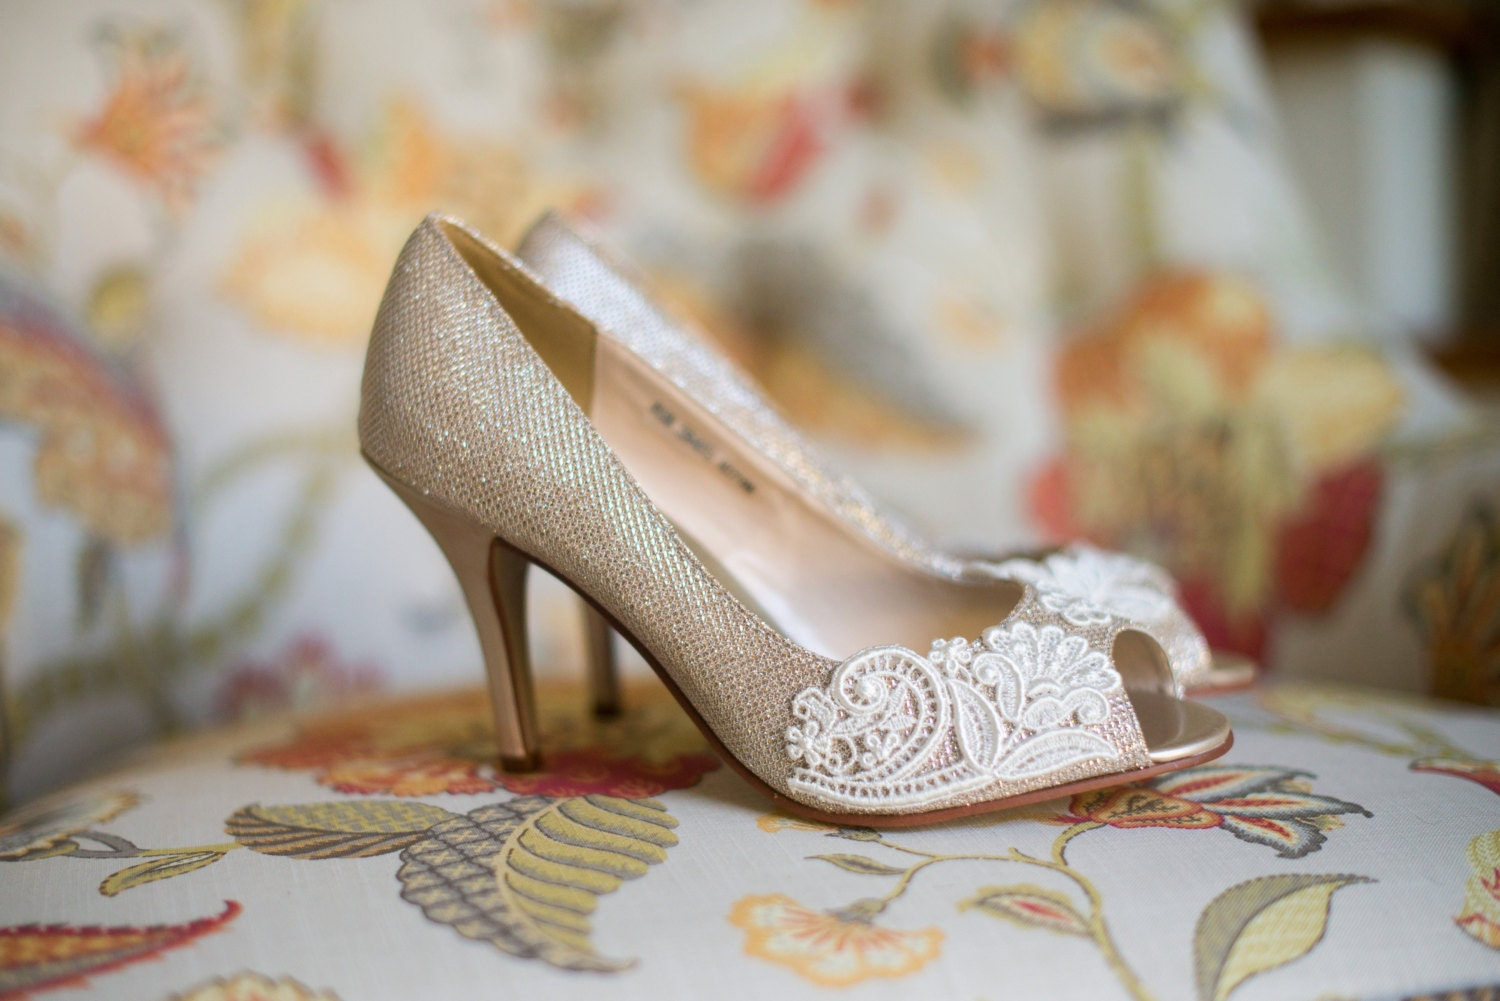 wedding shoes gold champagne silver low heel wedding shoes heels vegan bridal shoes embellished with floral zoom